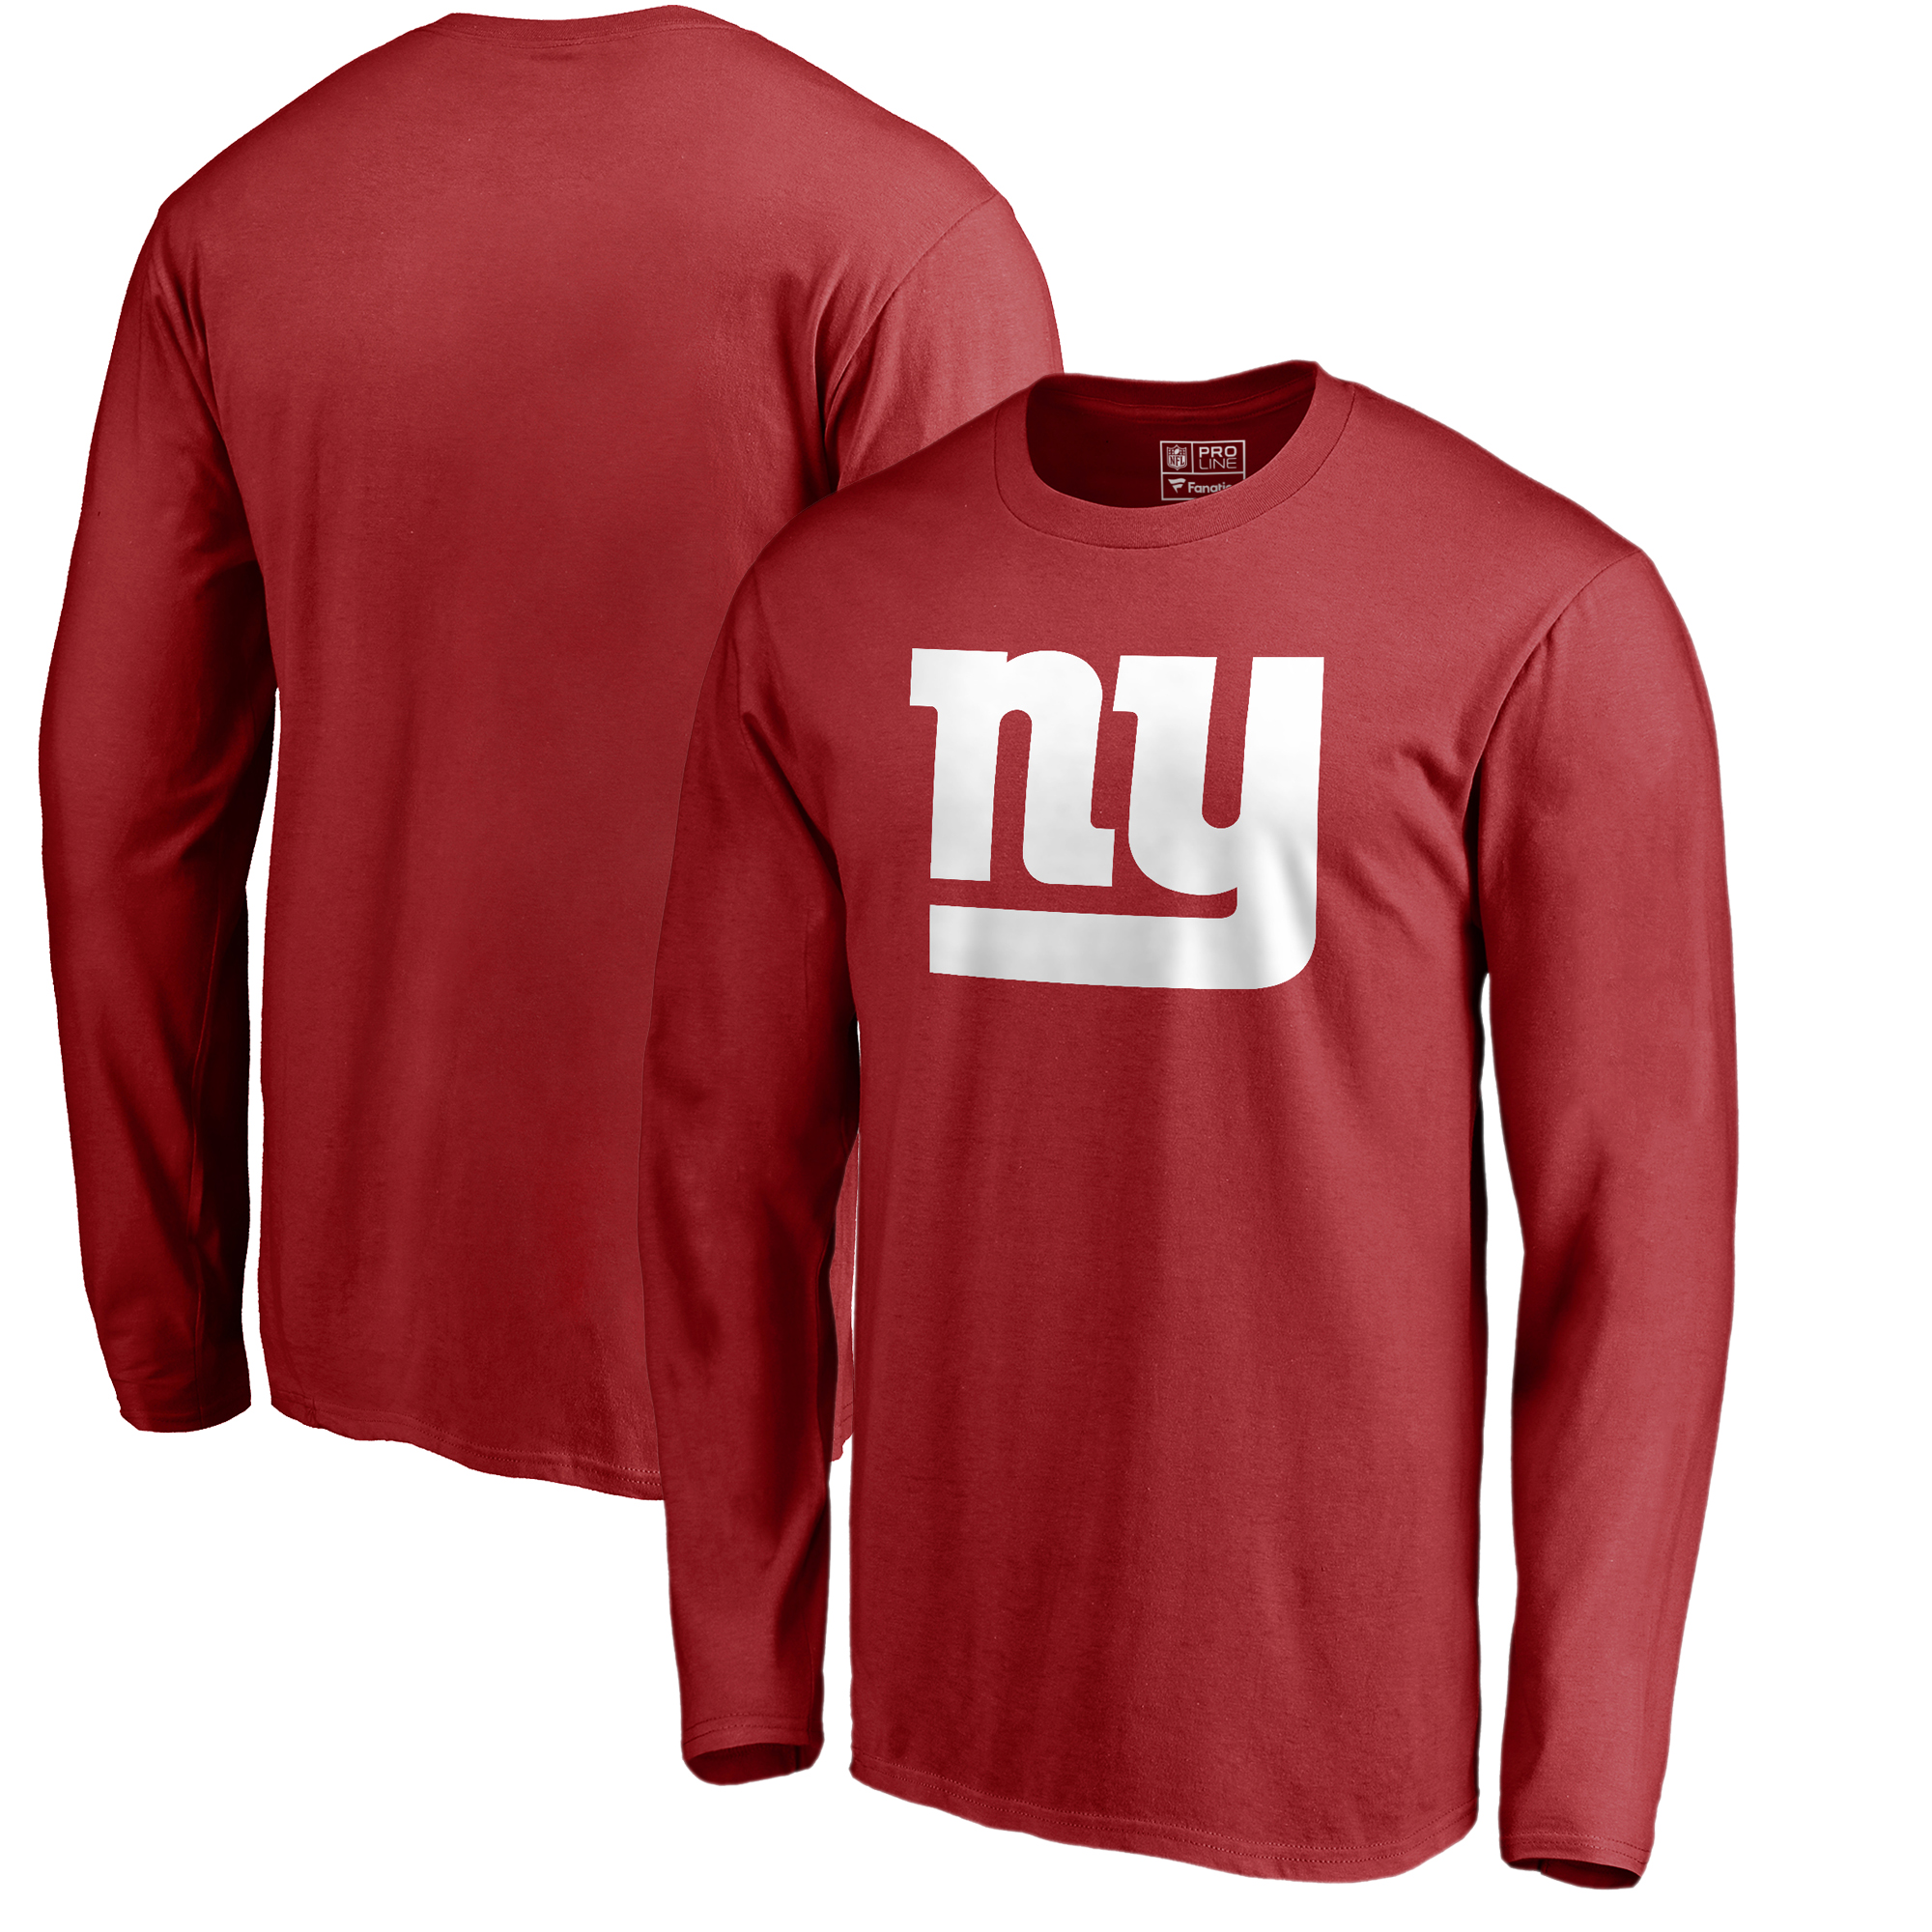 New York Giants NFL Pro Line by Fanatics Branded Primary Logo Long-Sleeve T-Shirt - Red